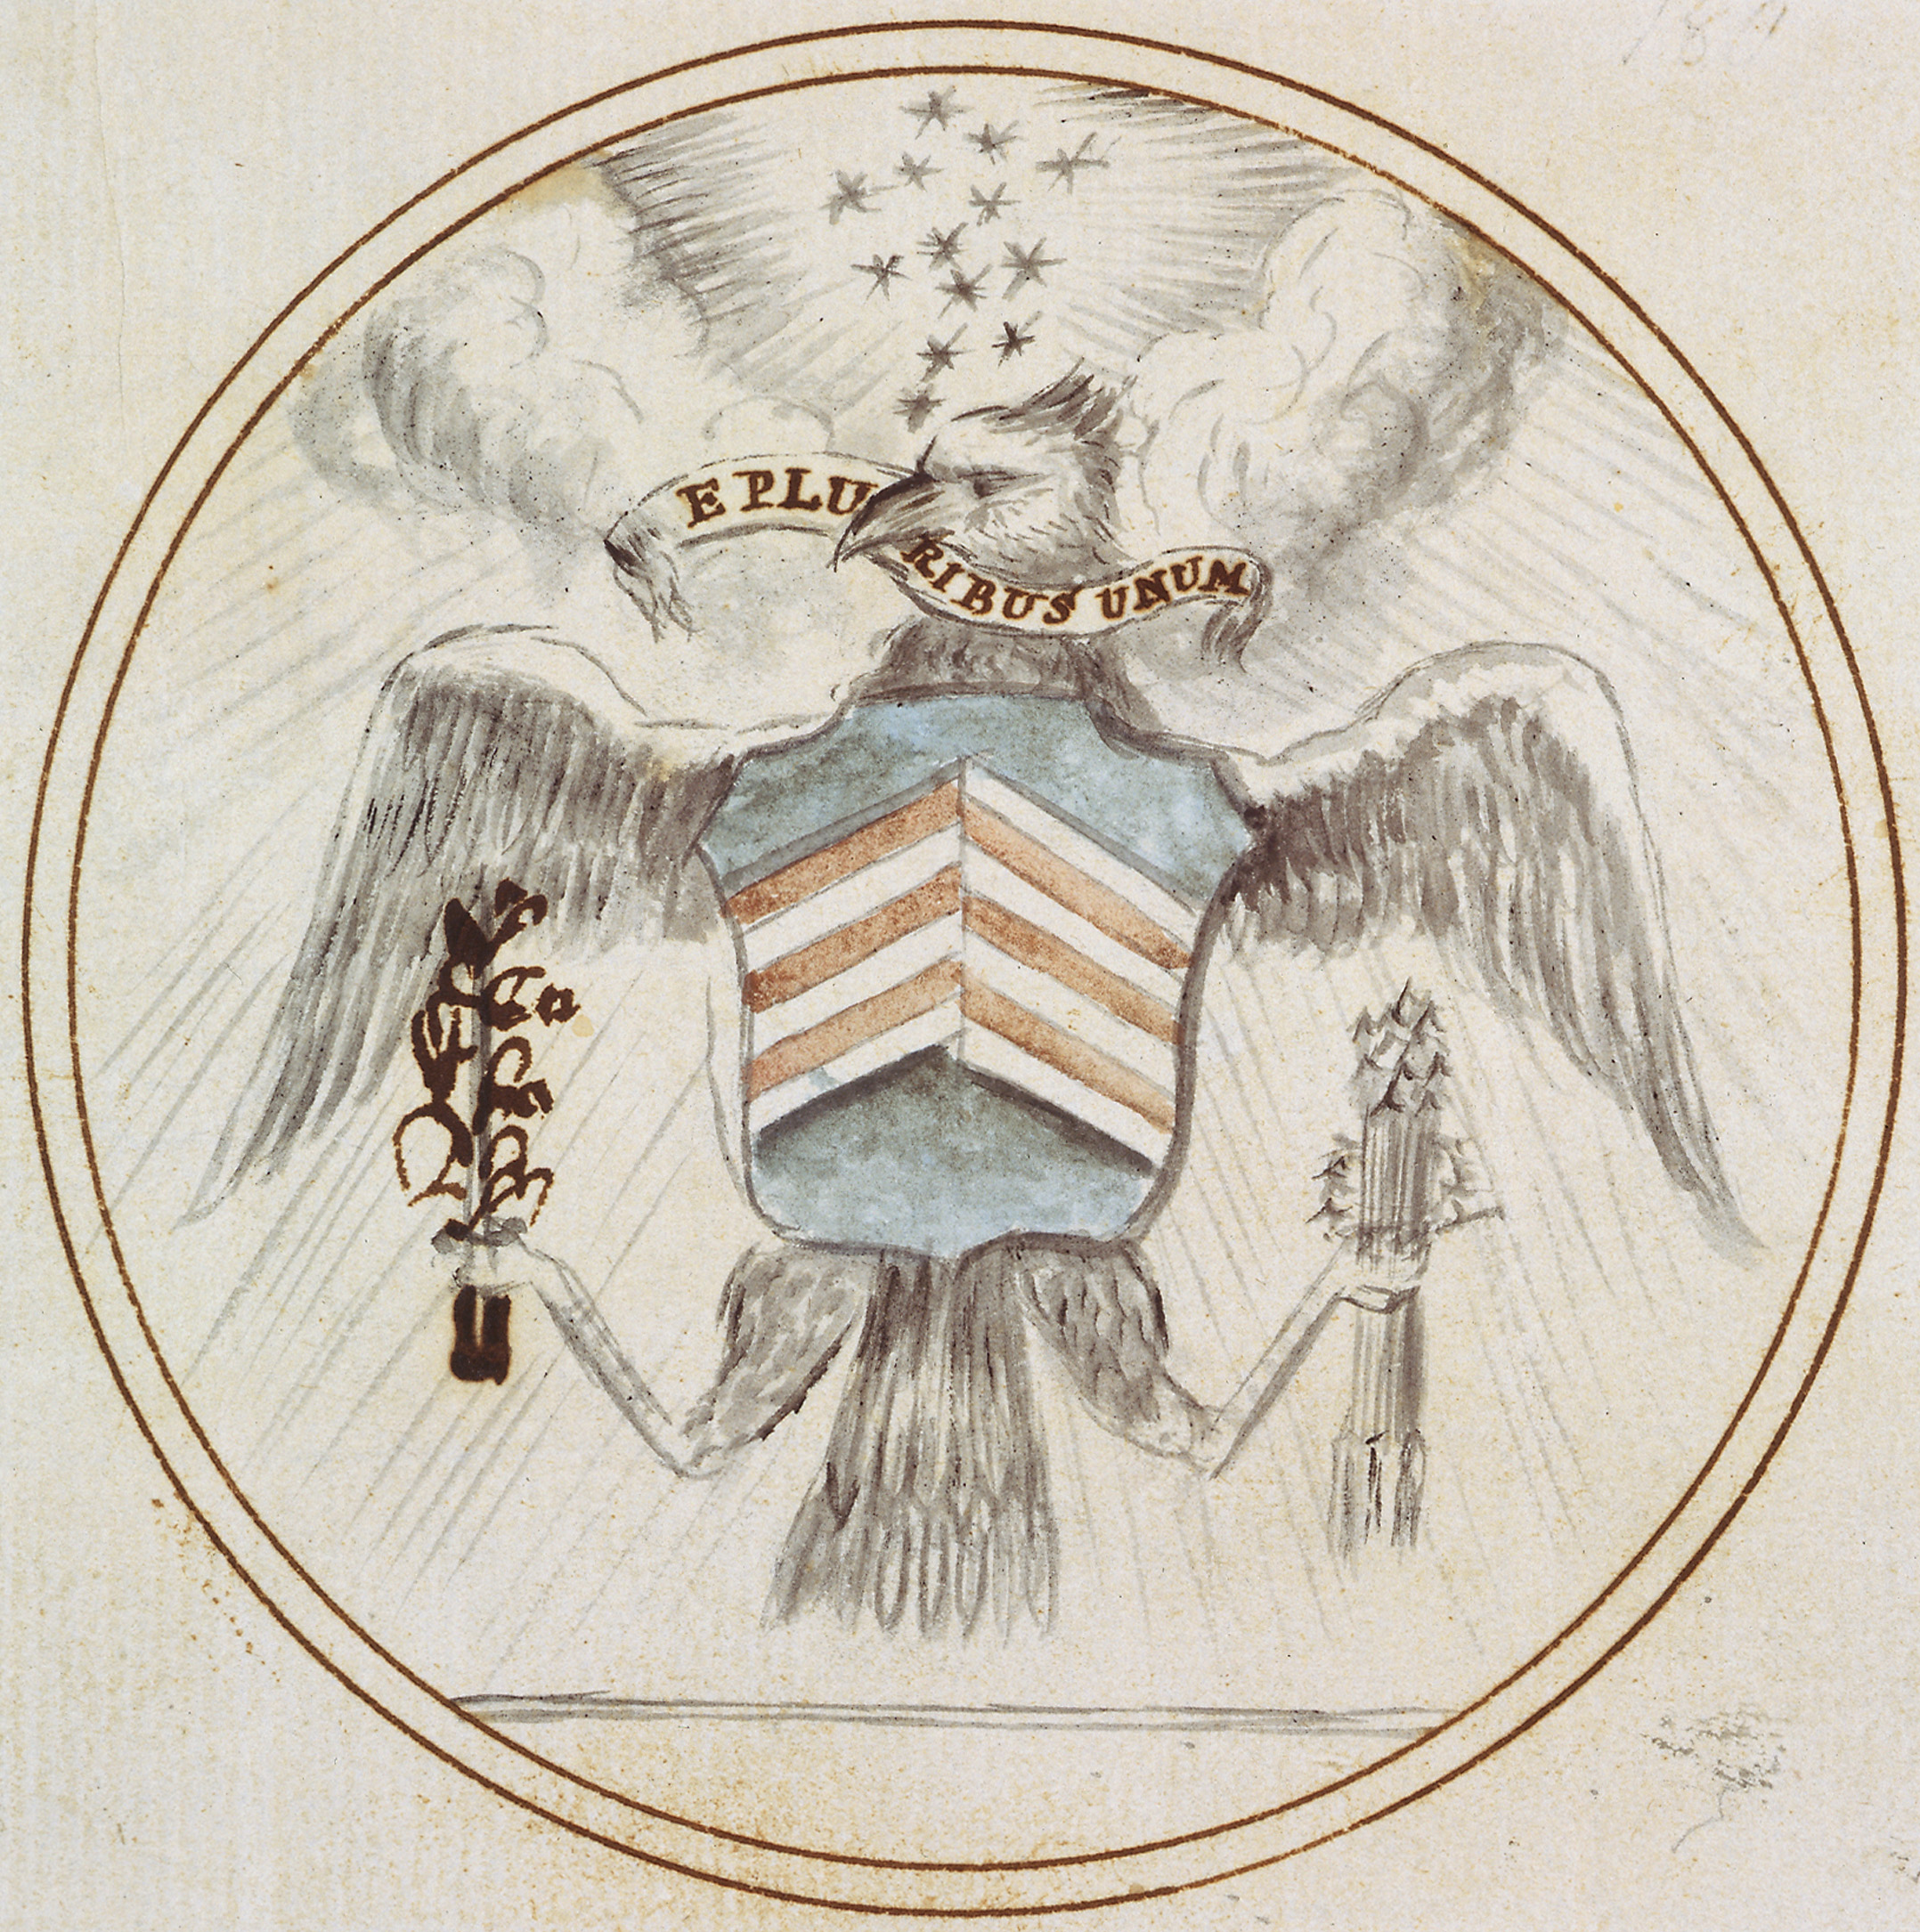 Preliminary design for the Great Seal of the United States, 1782